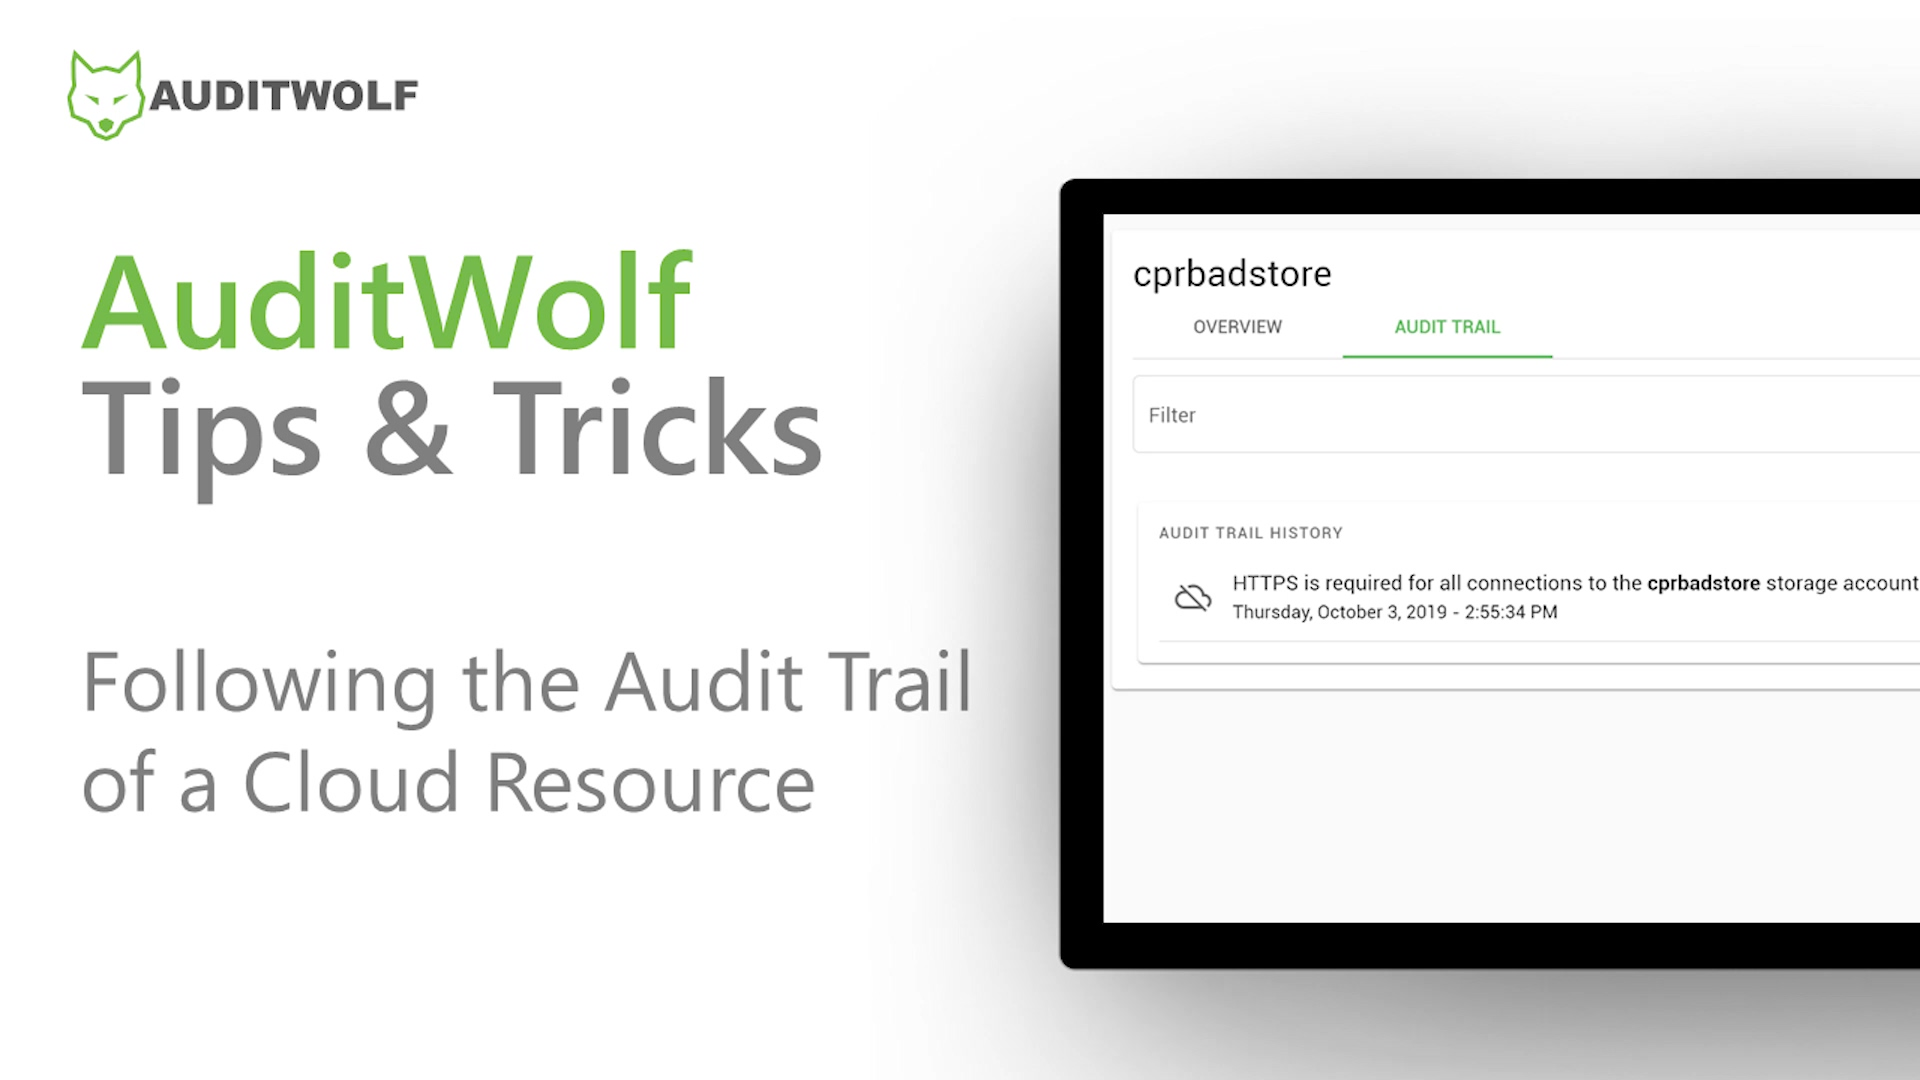 Following-the-Audit-Trail-of-a-Cloud-Resource-AW-SC-010